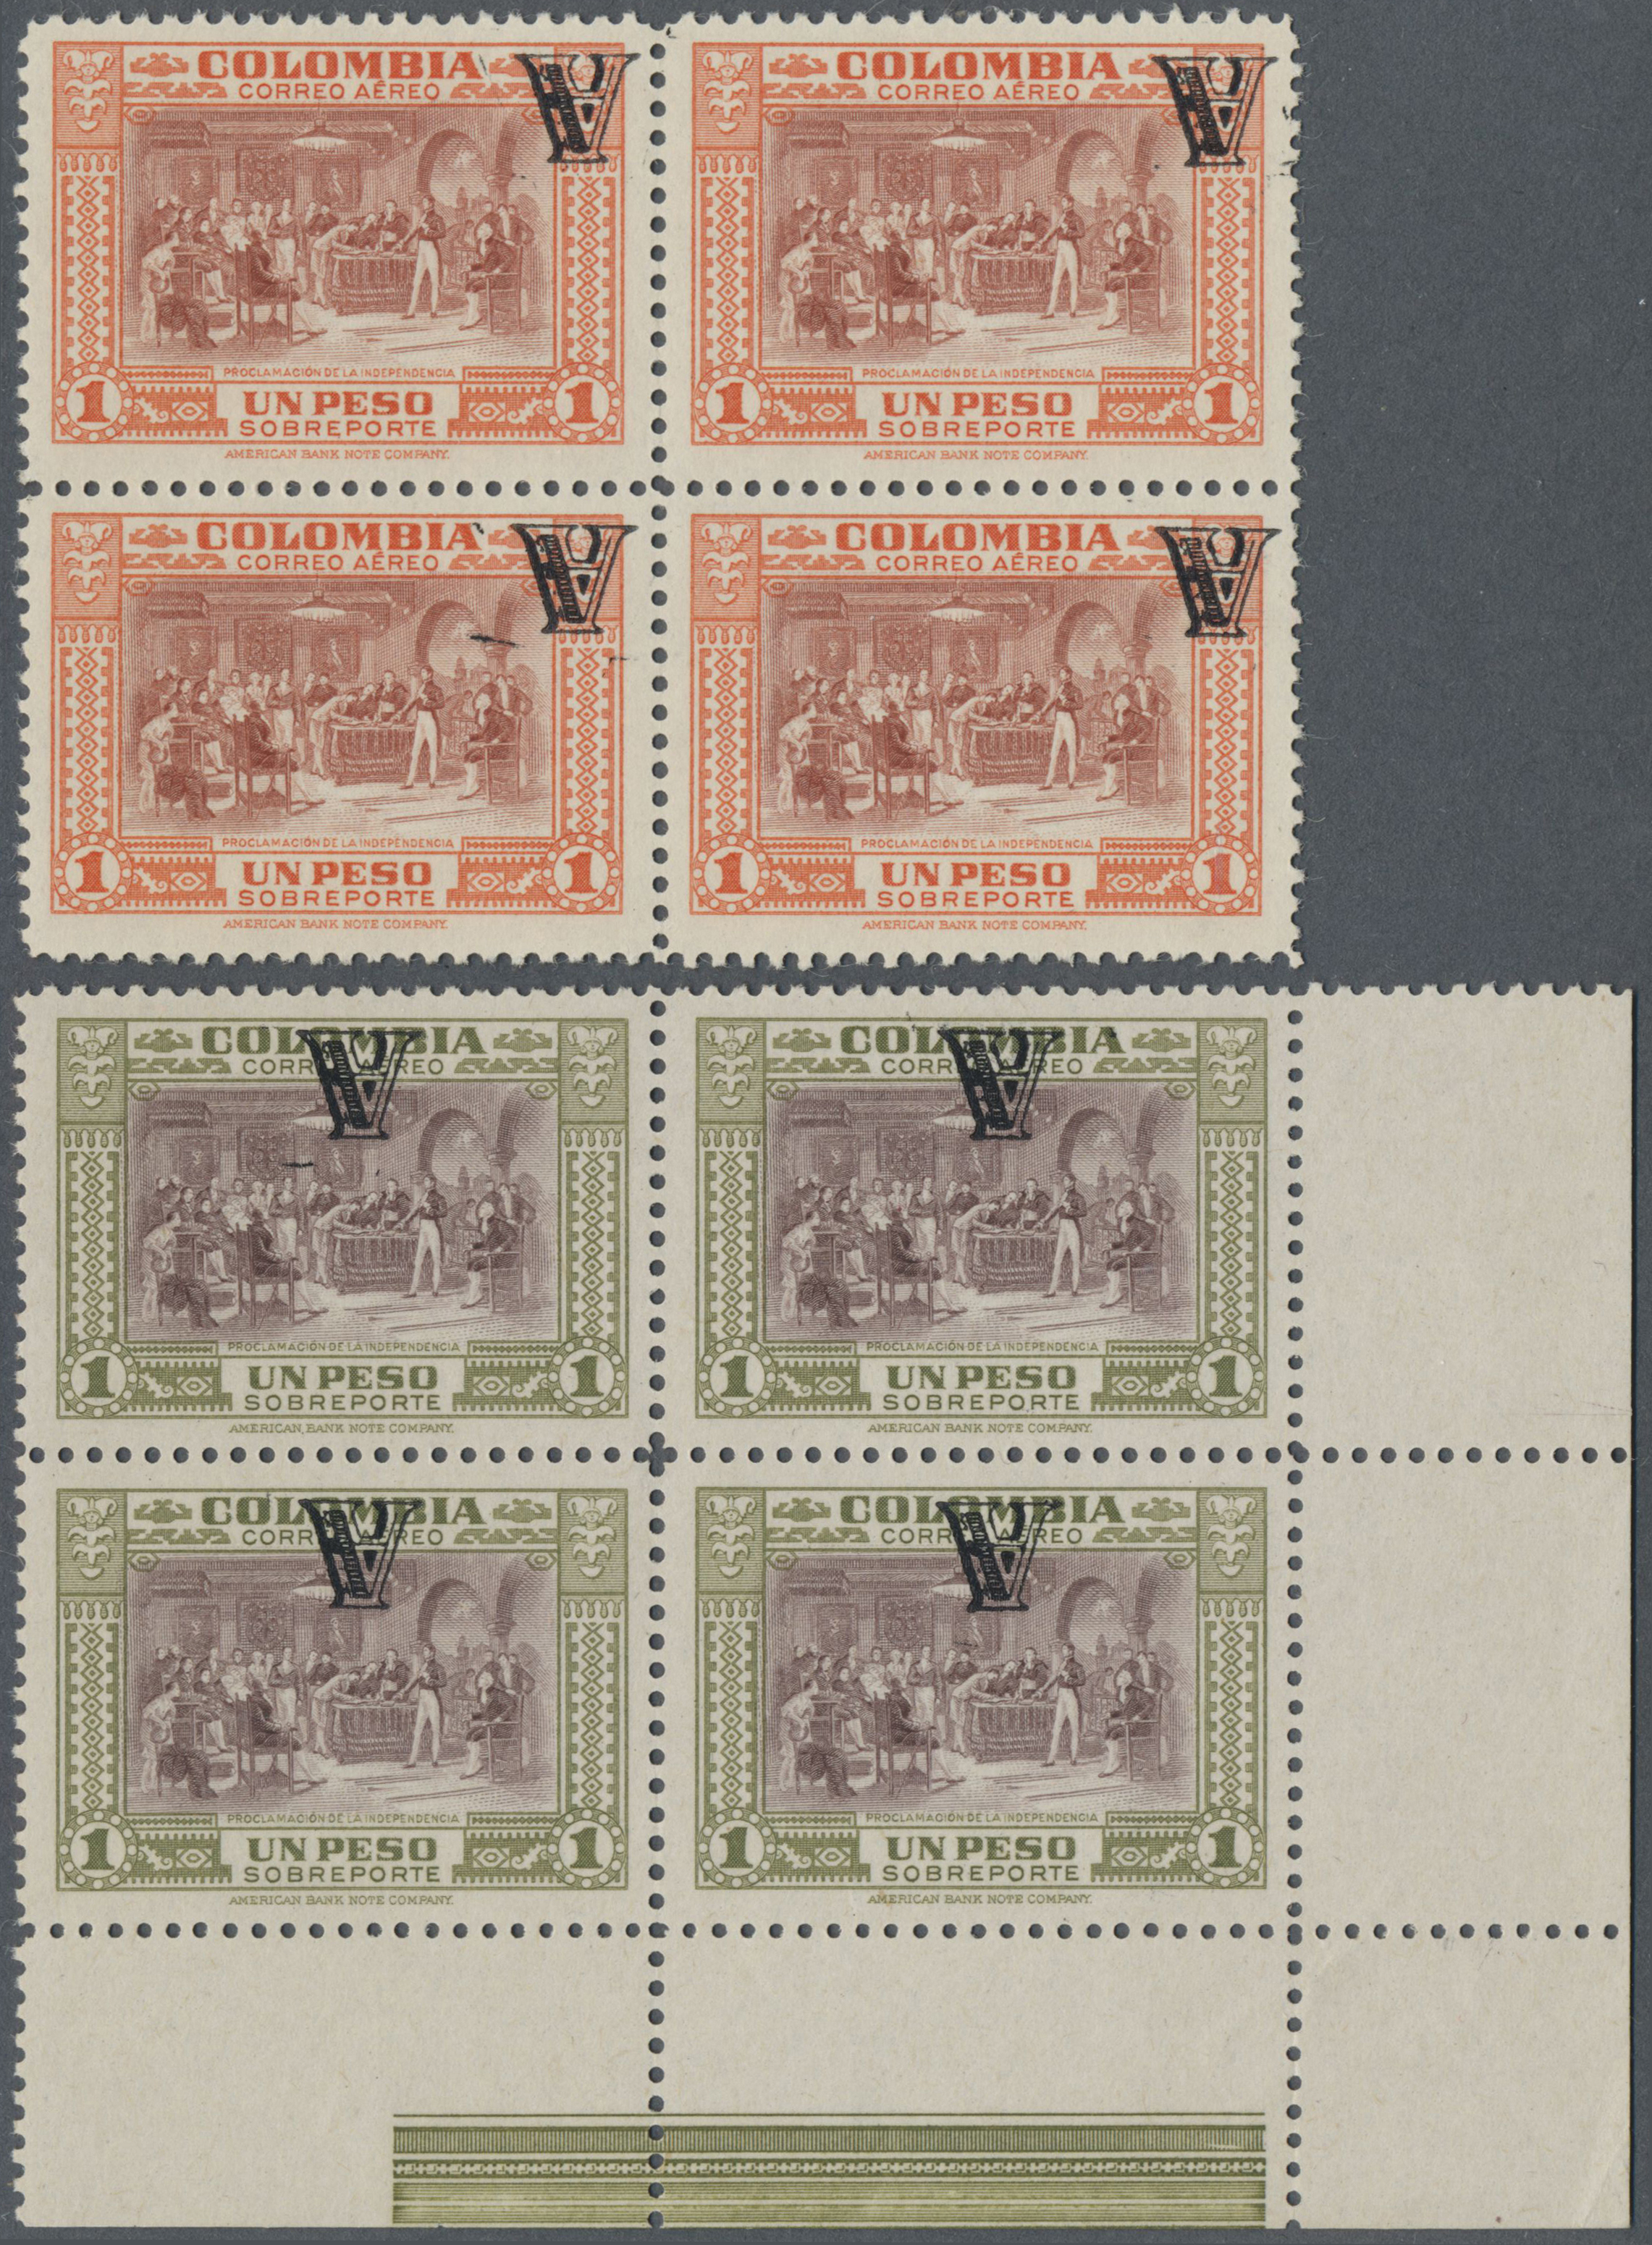 Lot 13943 - kolumbien  -  Auktionshaus Christoph Gärtner GmbH & Co. KG Single lots Philately Overseas & Europe. Auction #39 Day 4